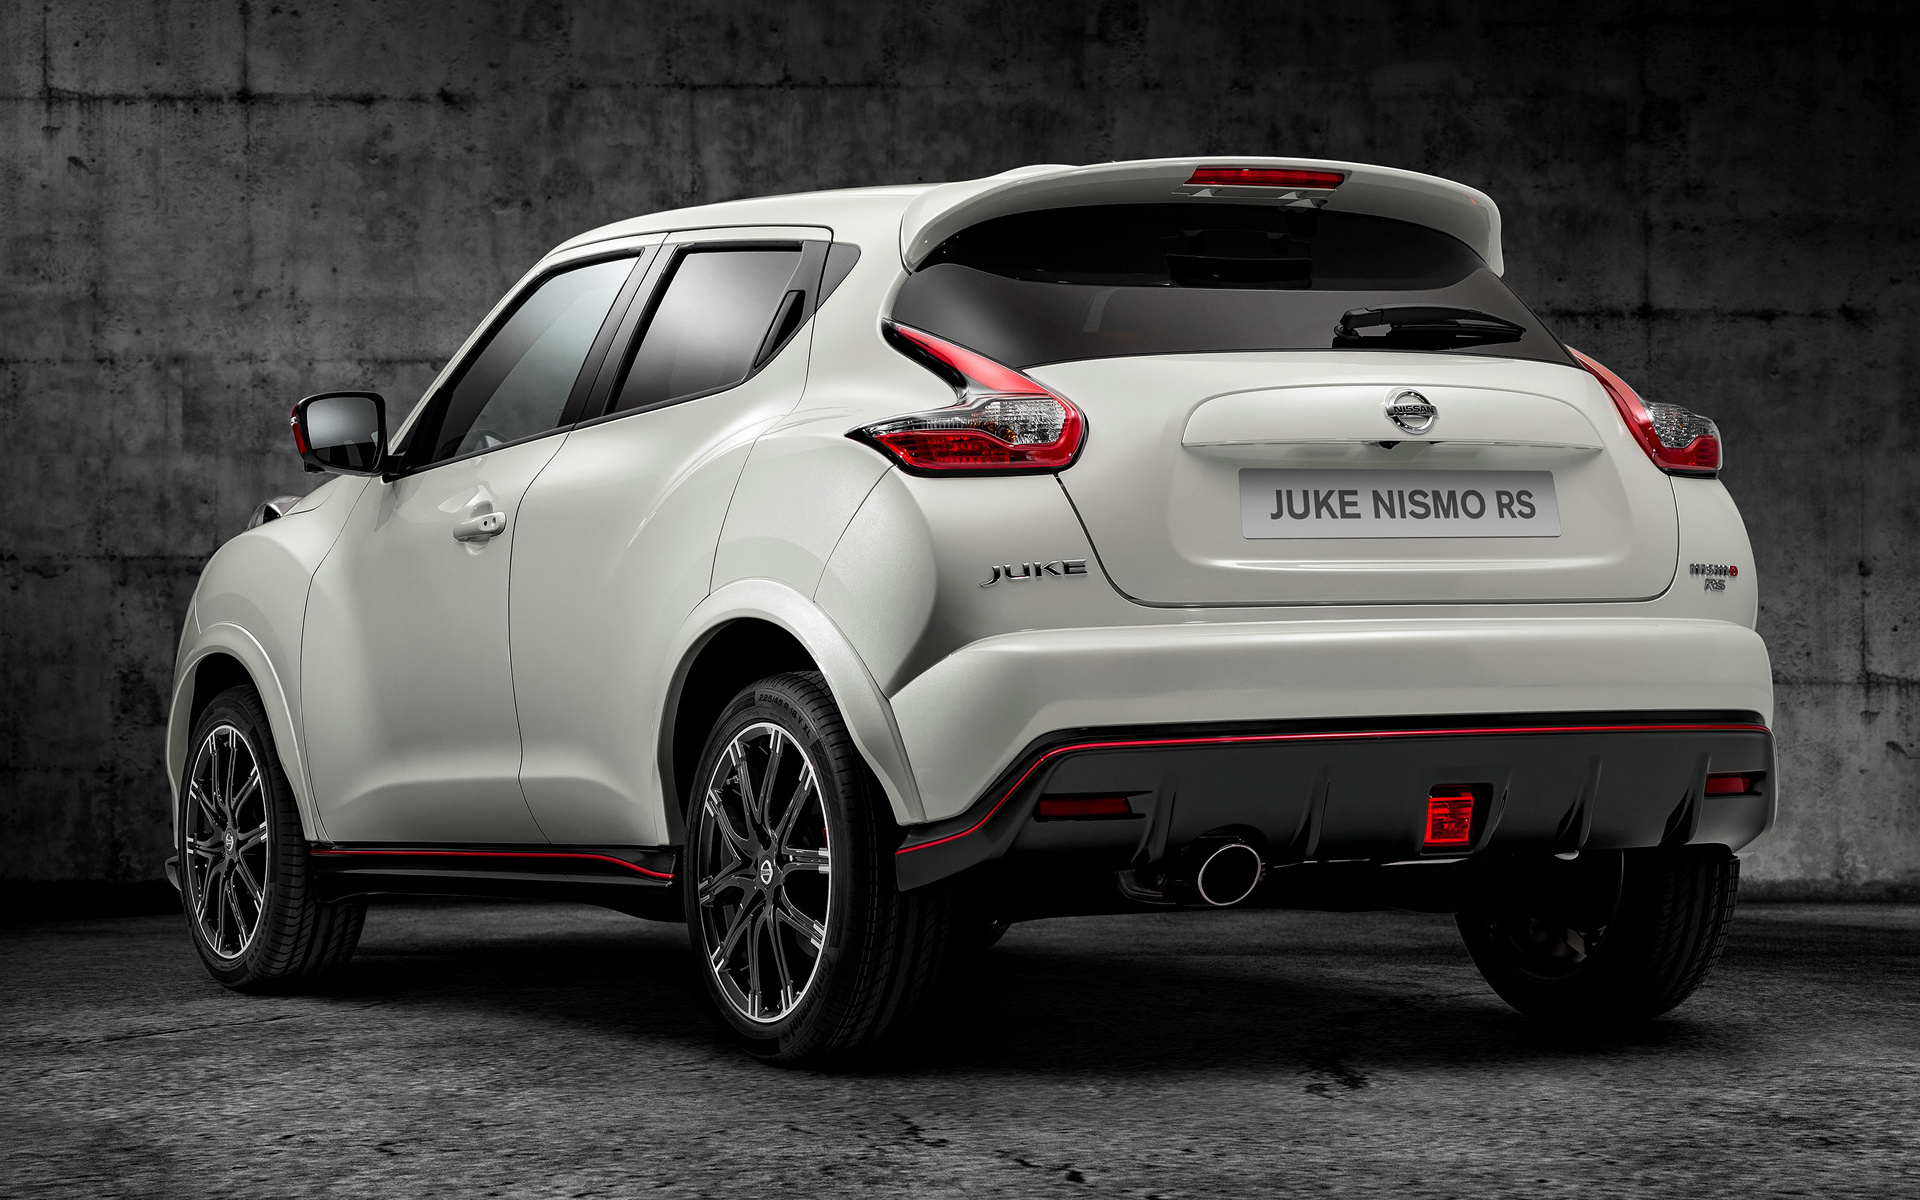 2014 nissan juke nismo rs wallpapers and hd images car. Black Bedroom Furniture Sets. Home Design Ideas